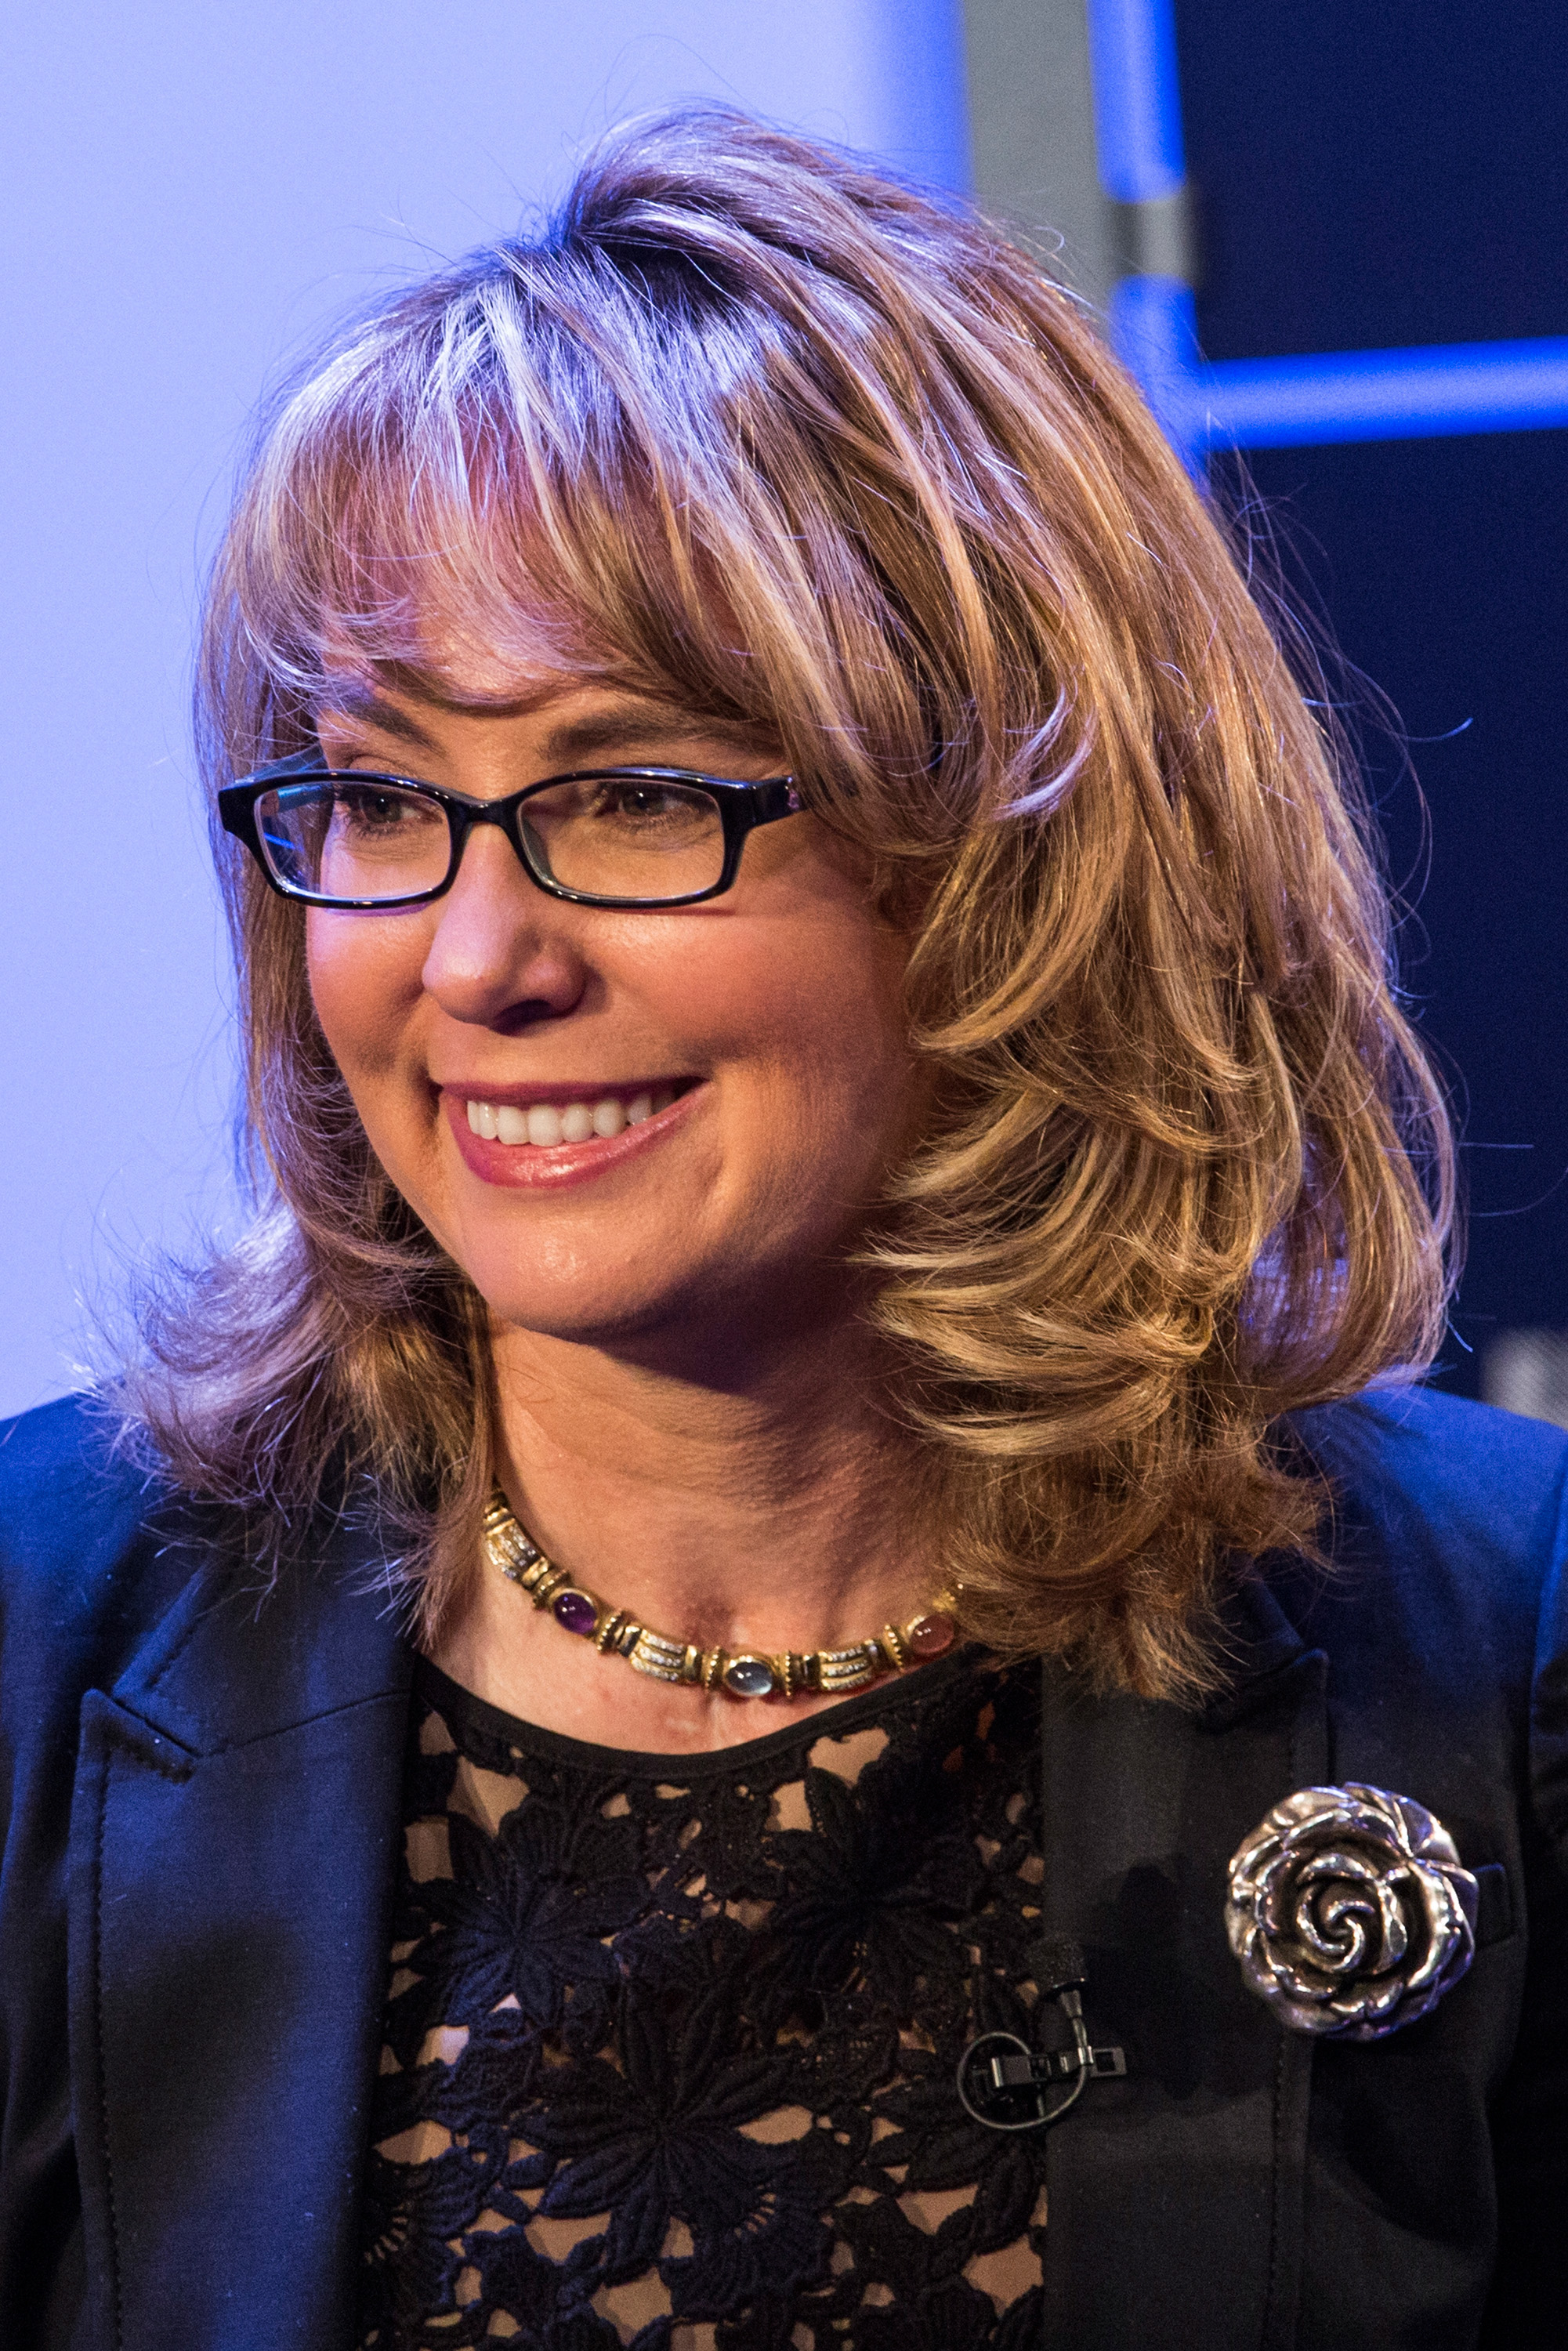 Retired Congresswoman and co-founder of Americans for Responsible Solutions, Gabby Giffords, speaks at New York Ideas, a conference that brings together leaders from a variety of industries on May 6, 2014 in New York City.